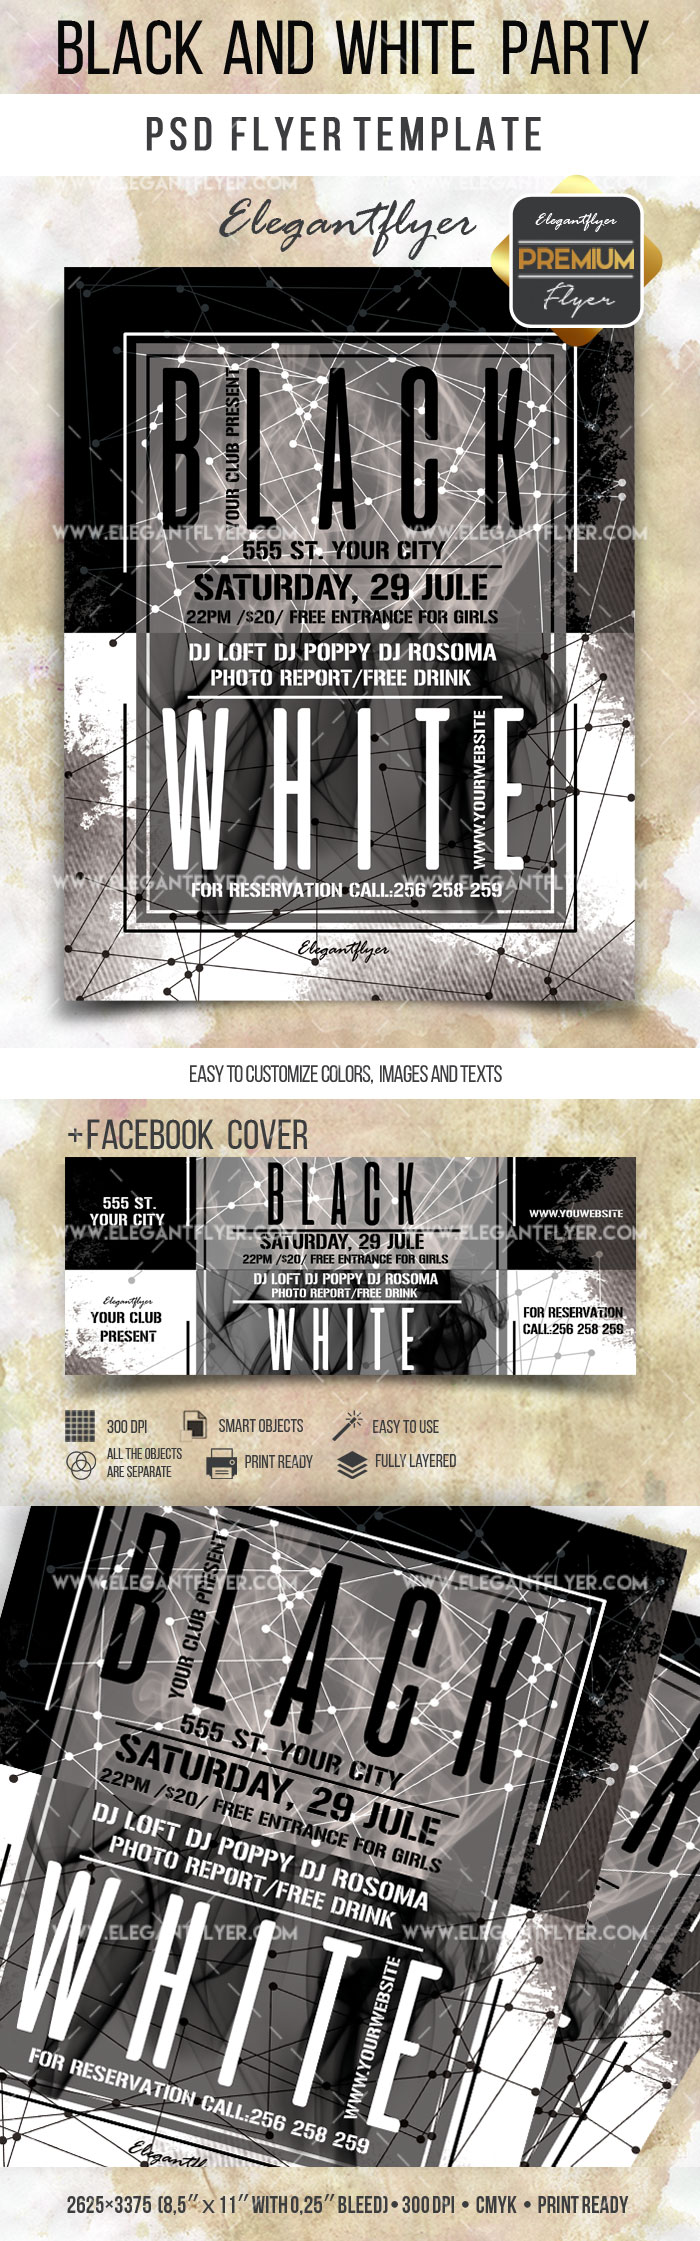 Flyer Template For Black And White Theme Party By ElegantFlyer - Black and white flyer template free